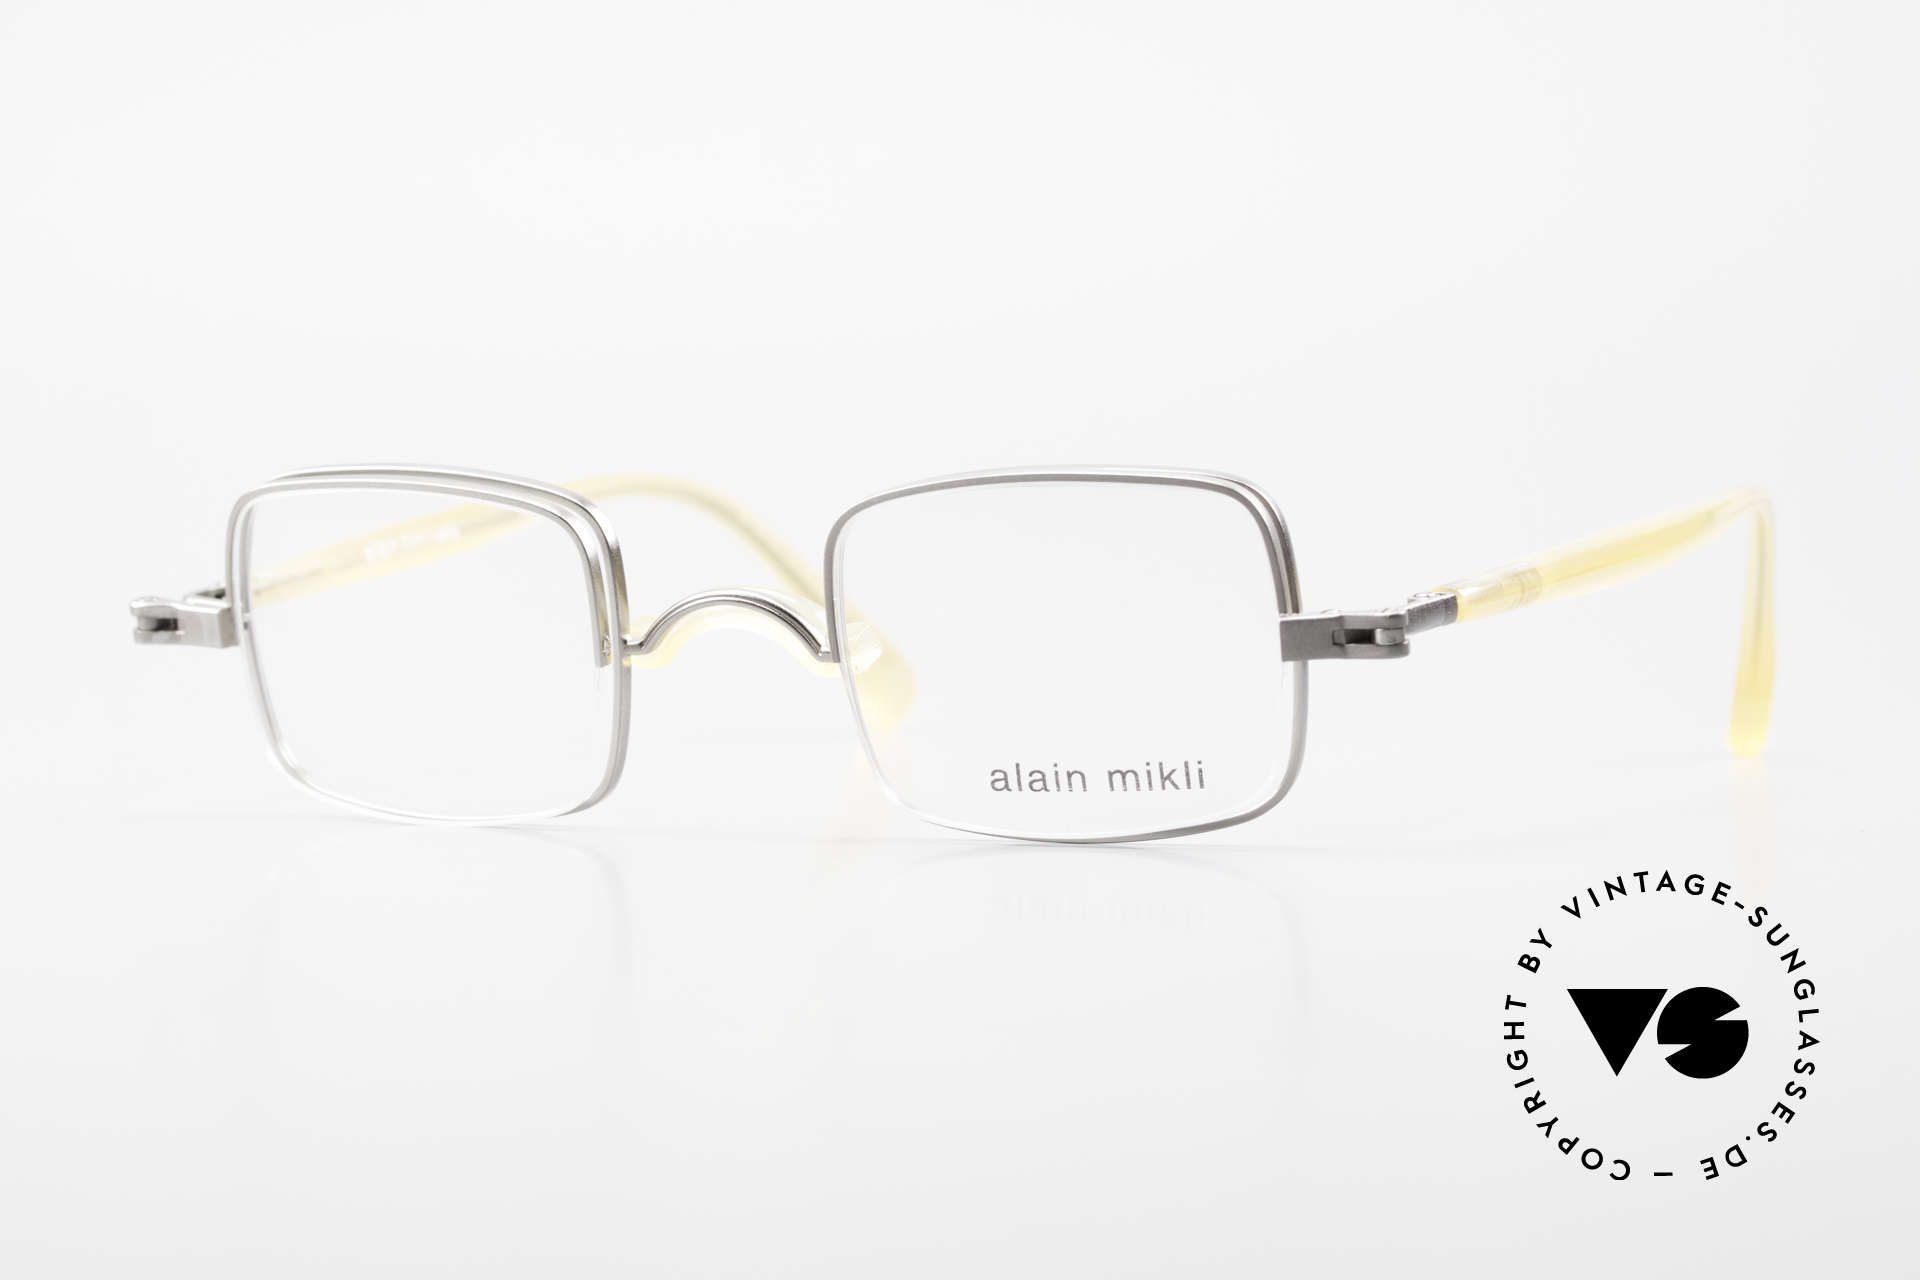 Alain Mikli 0115 / 01 Hinged Lenses 2 in 1 Glasses, ingenious vintage Alain Mikli designer eyeglasses, Made for Men and Women